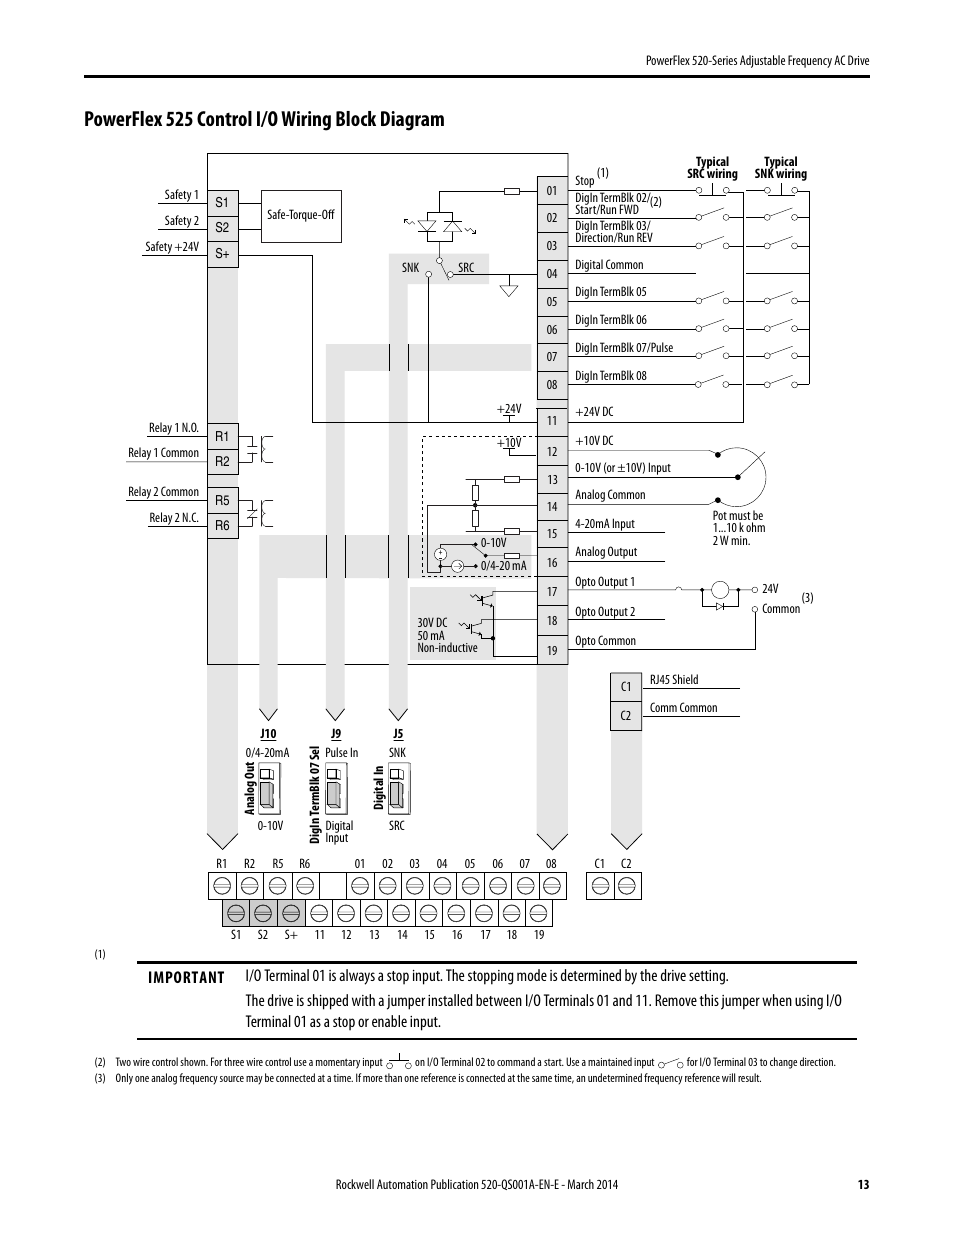 rockwell automation 25b powerflex 520 series adjustable frequency ac drive quick start page13 wiring diagram powerflex 525 yhgfdmuor net powerflex 40 wiring diagram at creativeand.co